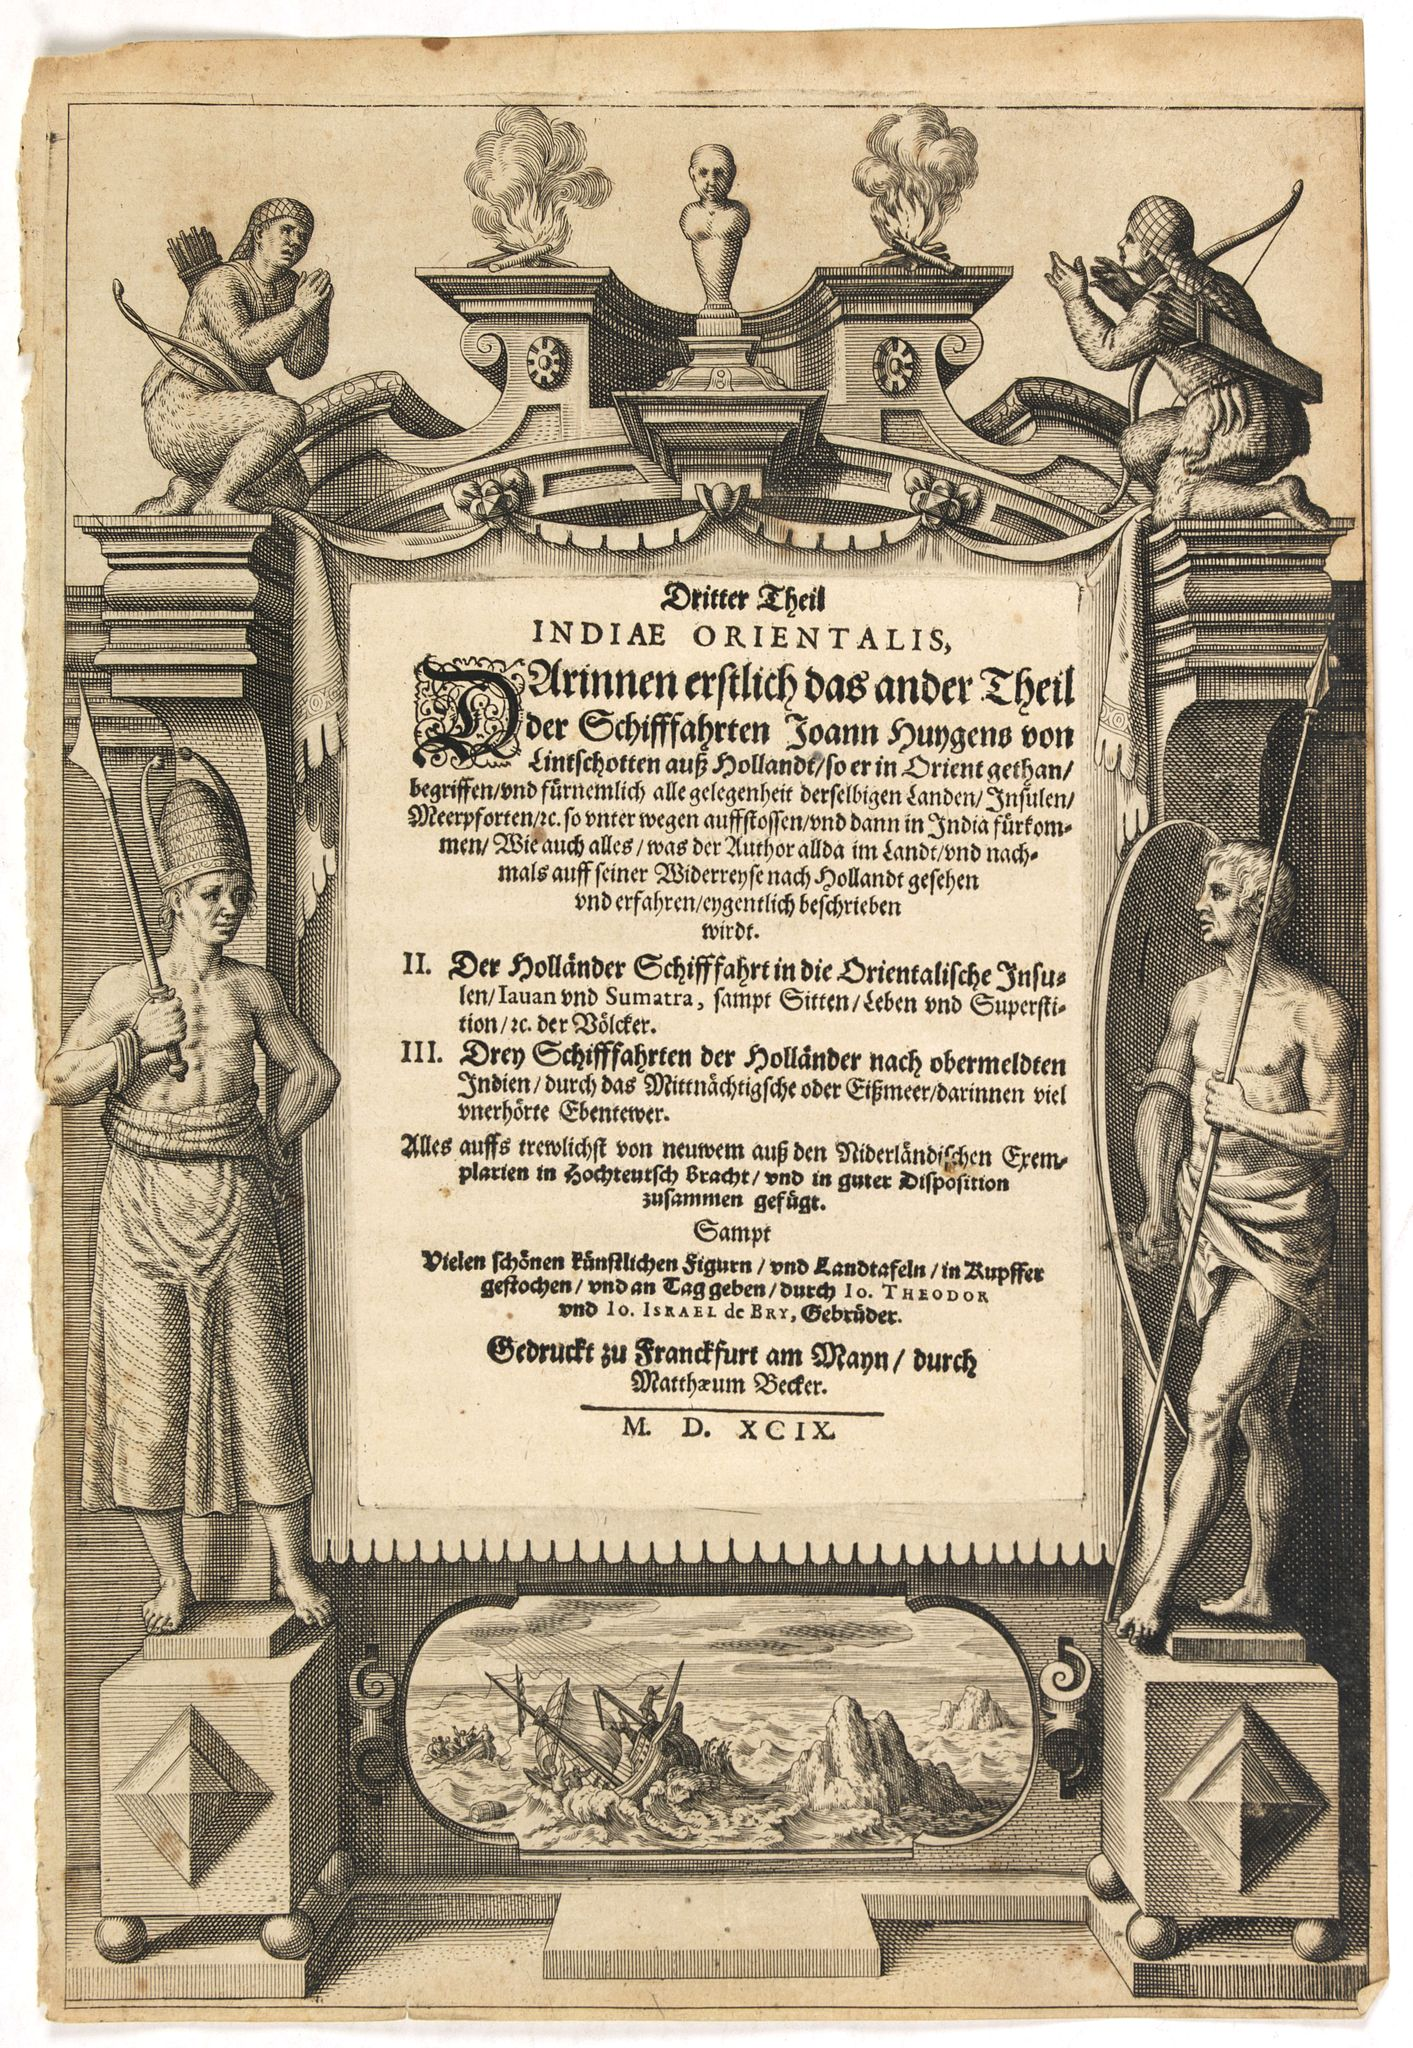 DE BRY, Th. -  Dritter Theil Indiae Orientalis . . . [Title page]